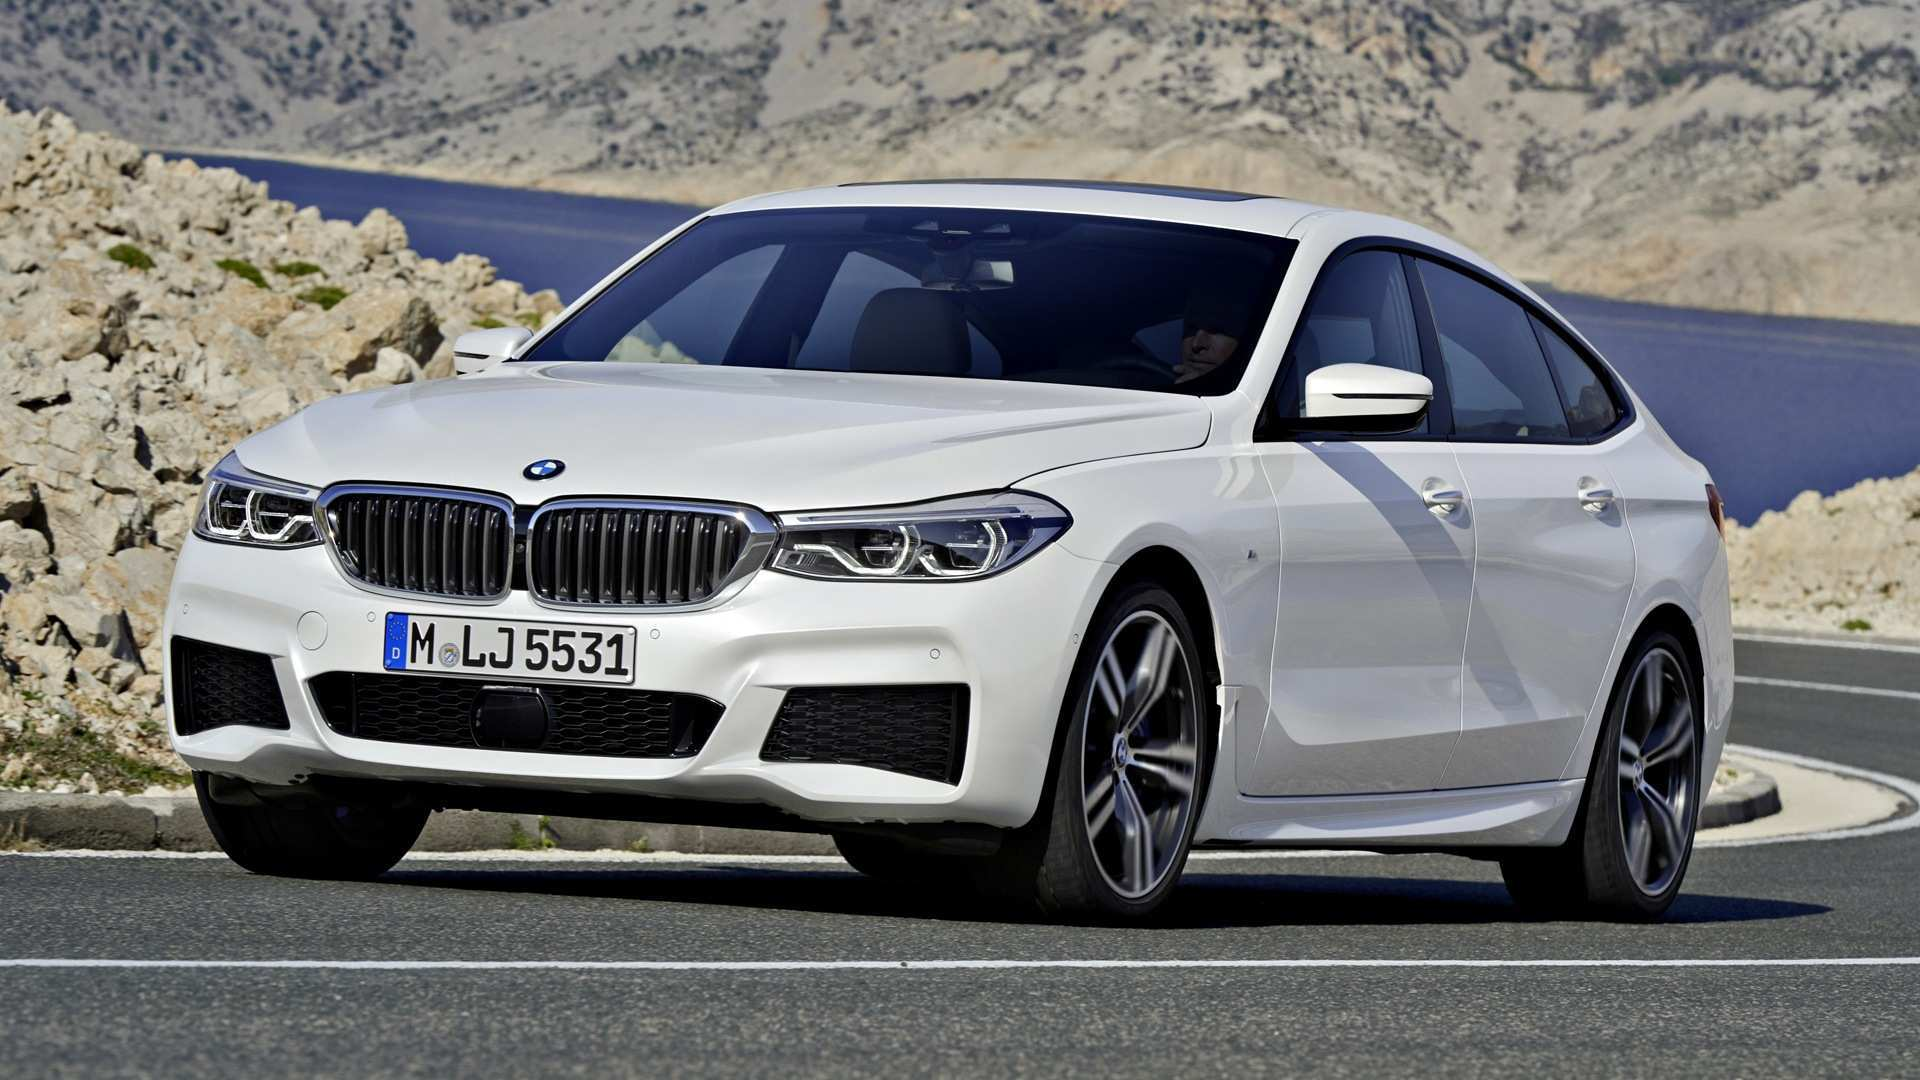 73 All New 2020 Bmw 6 Series Convertible Overview